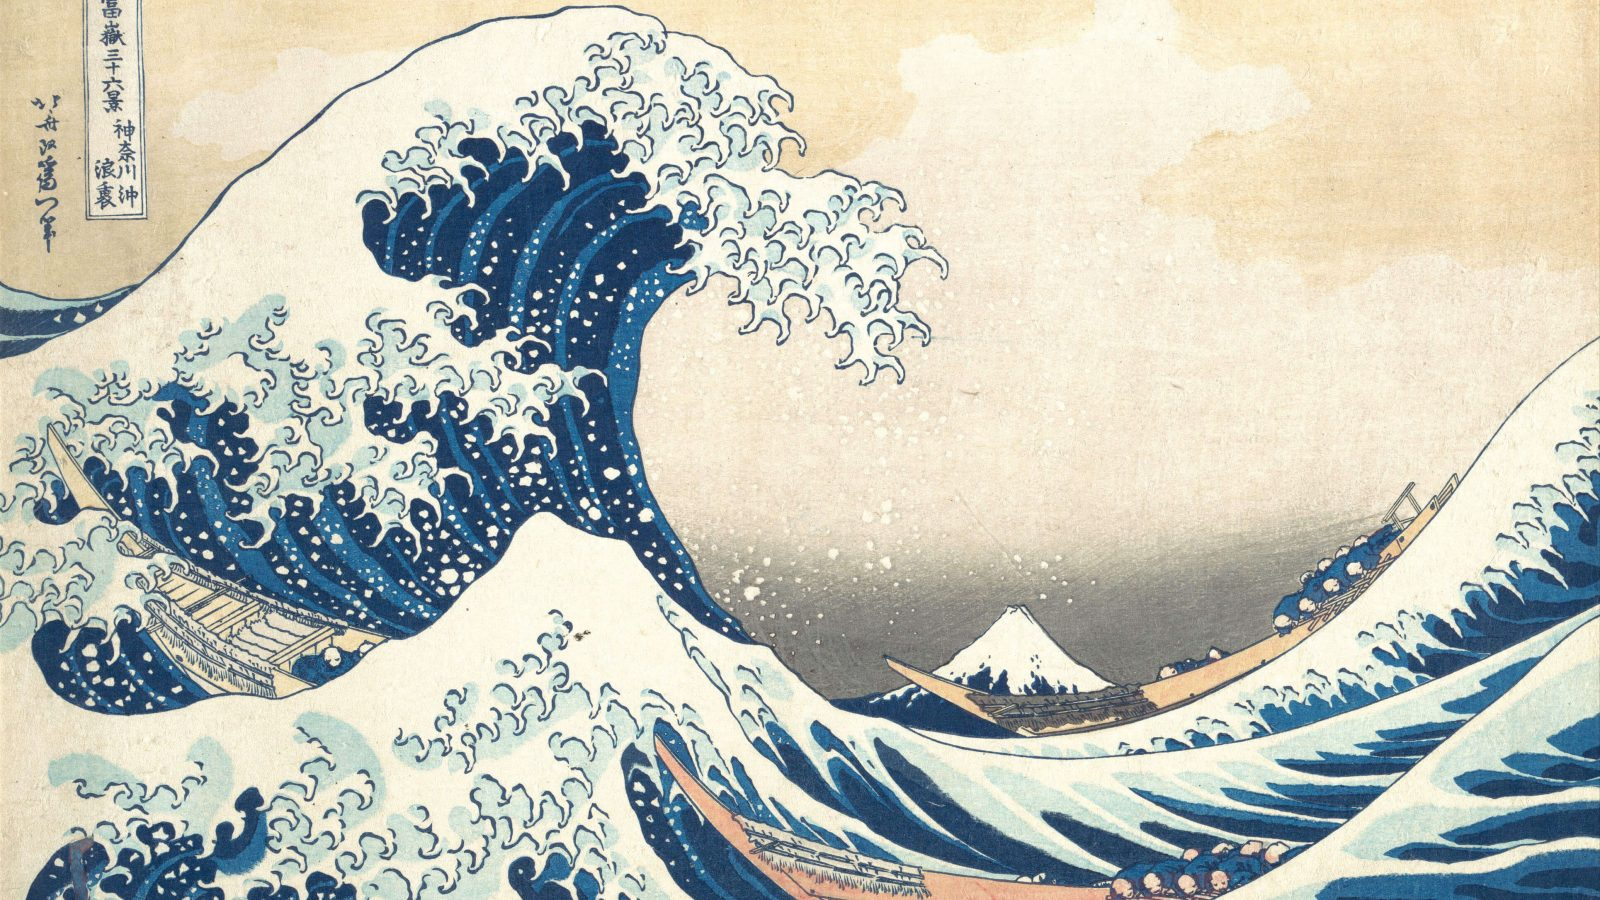 Katsushika Hokusai, Under the Wave off Kanagawa, color woodblock print, close-up with one great wave and one smaller wave in the foreground